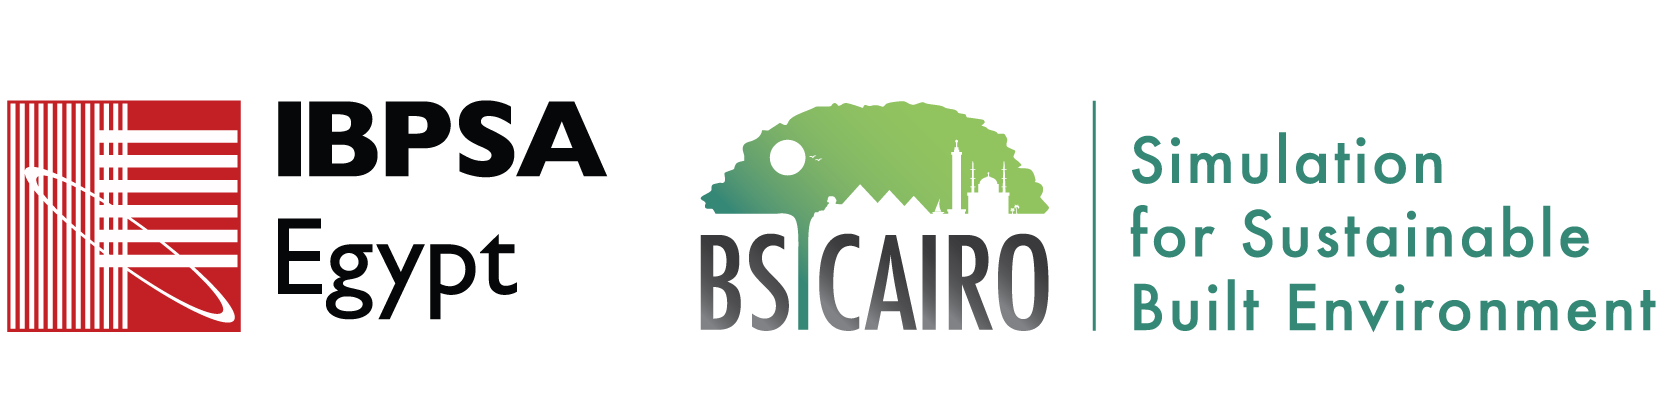 BSCairo Conference - 2019